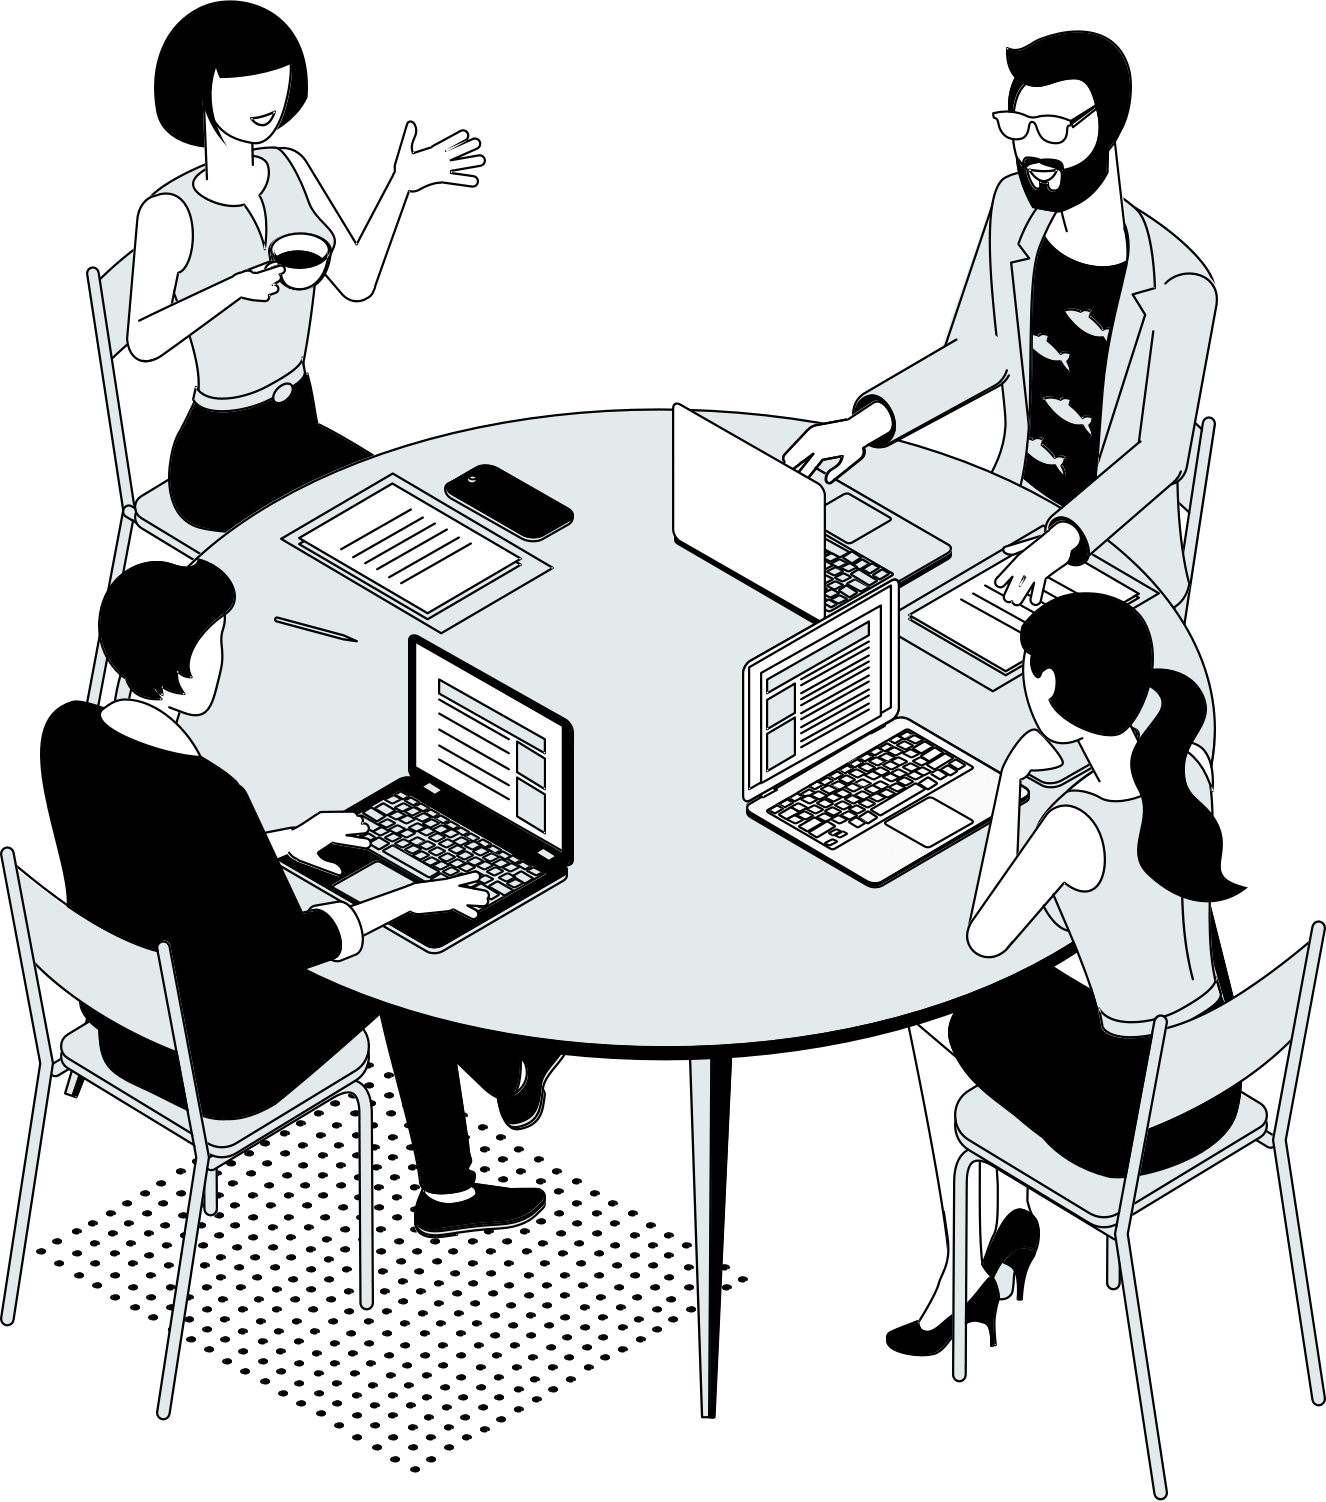 Illustration of people around a table on laptops